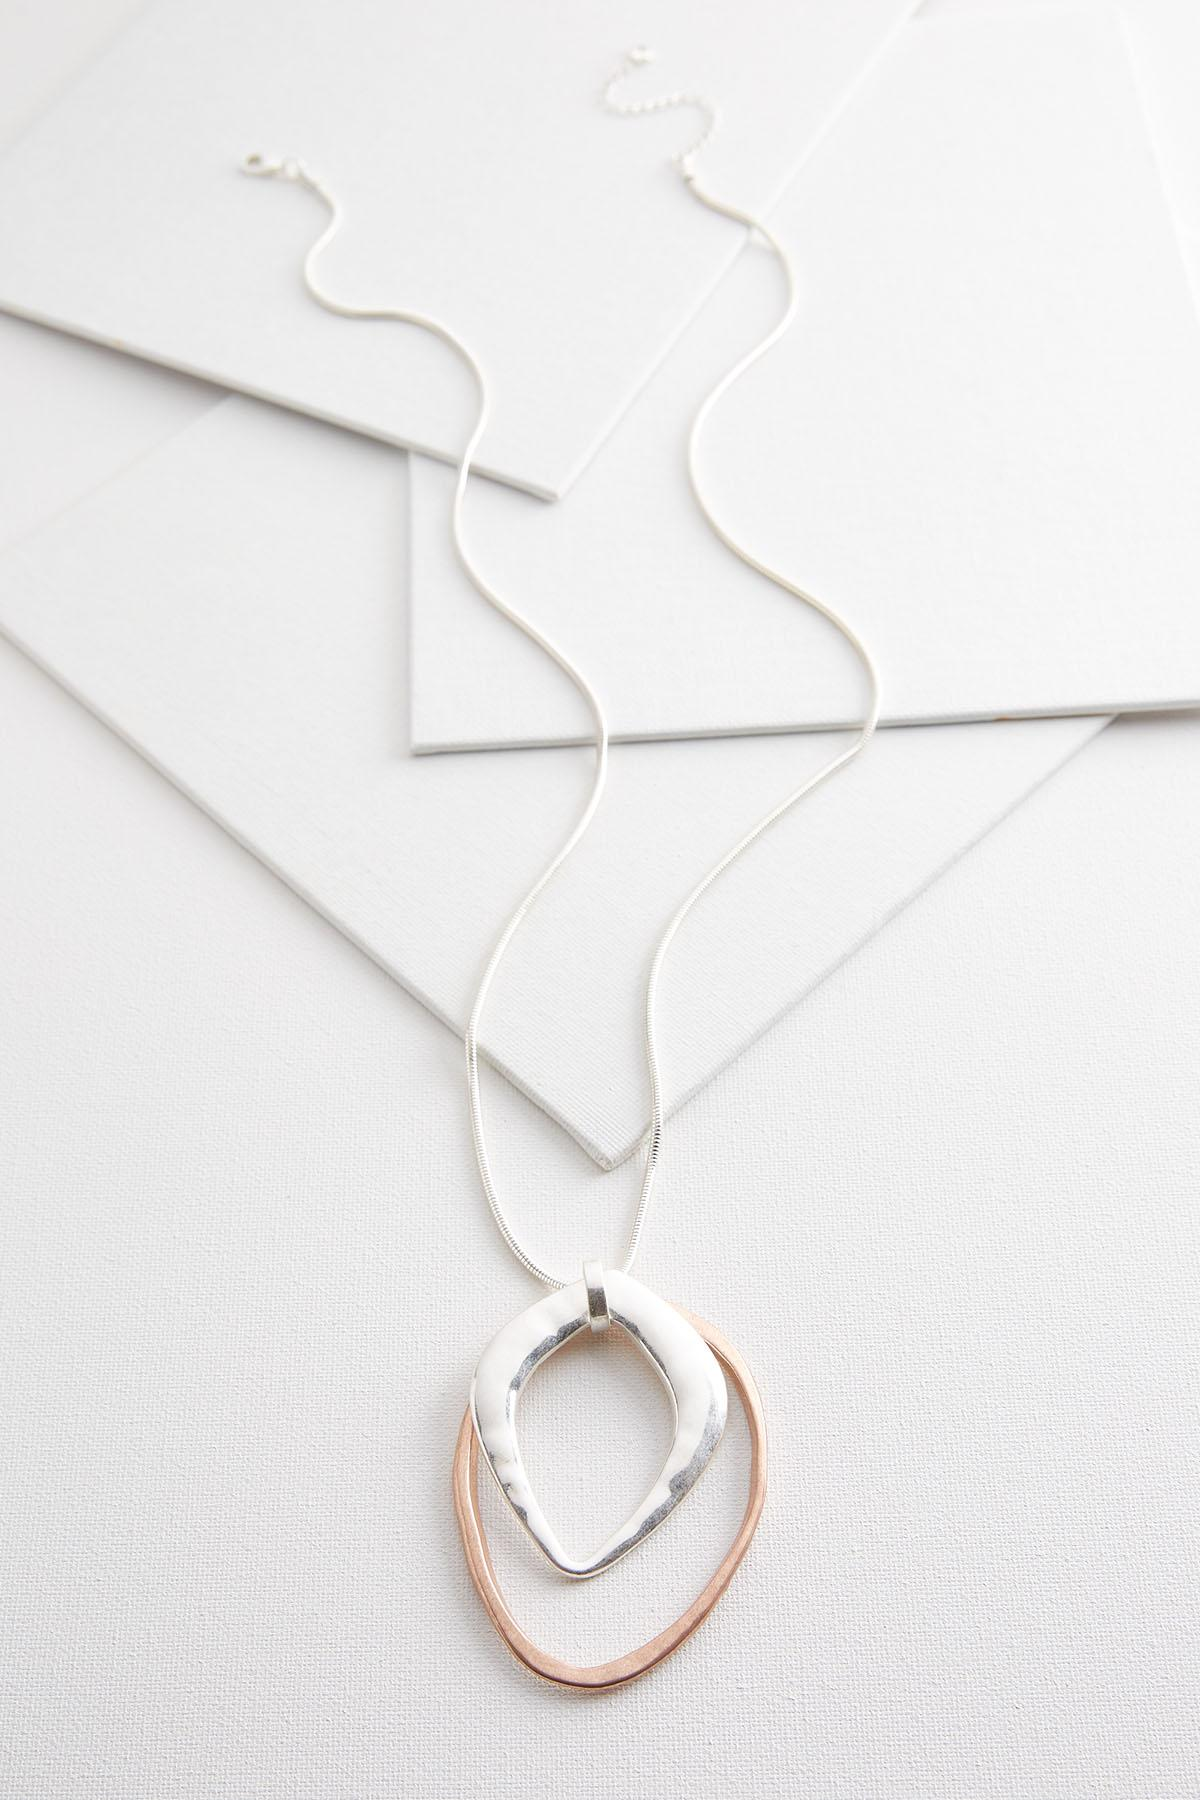 Hammered Two- Toned Pendant Necklace